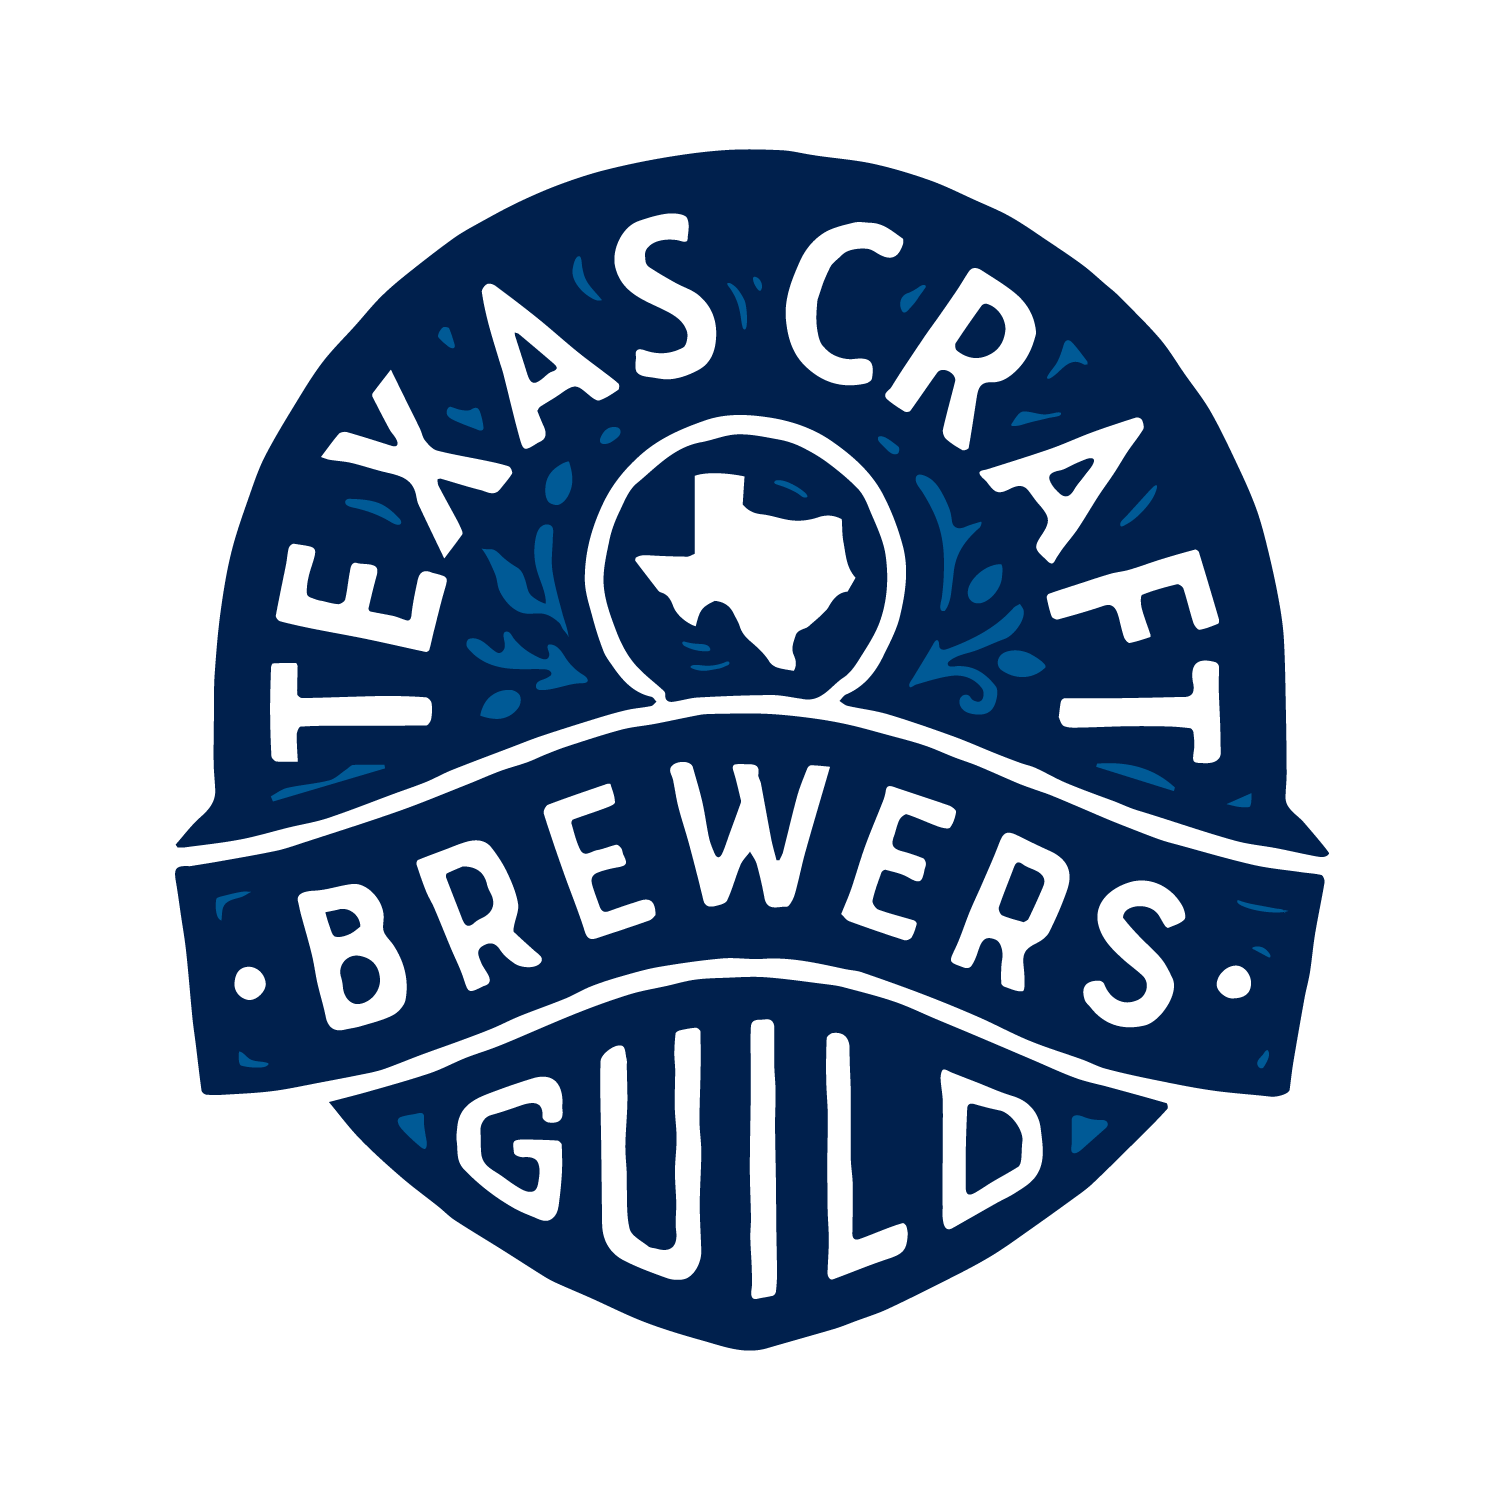 TX Craft Brewers Guild